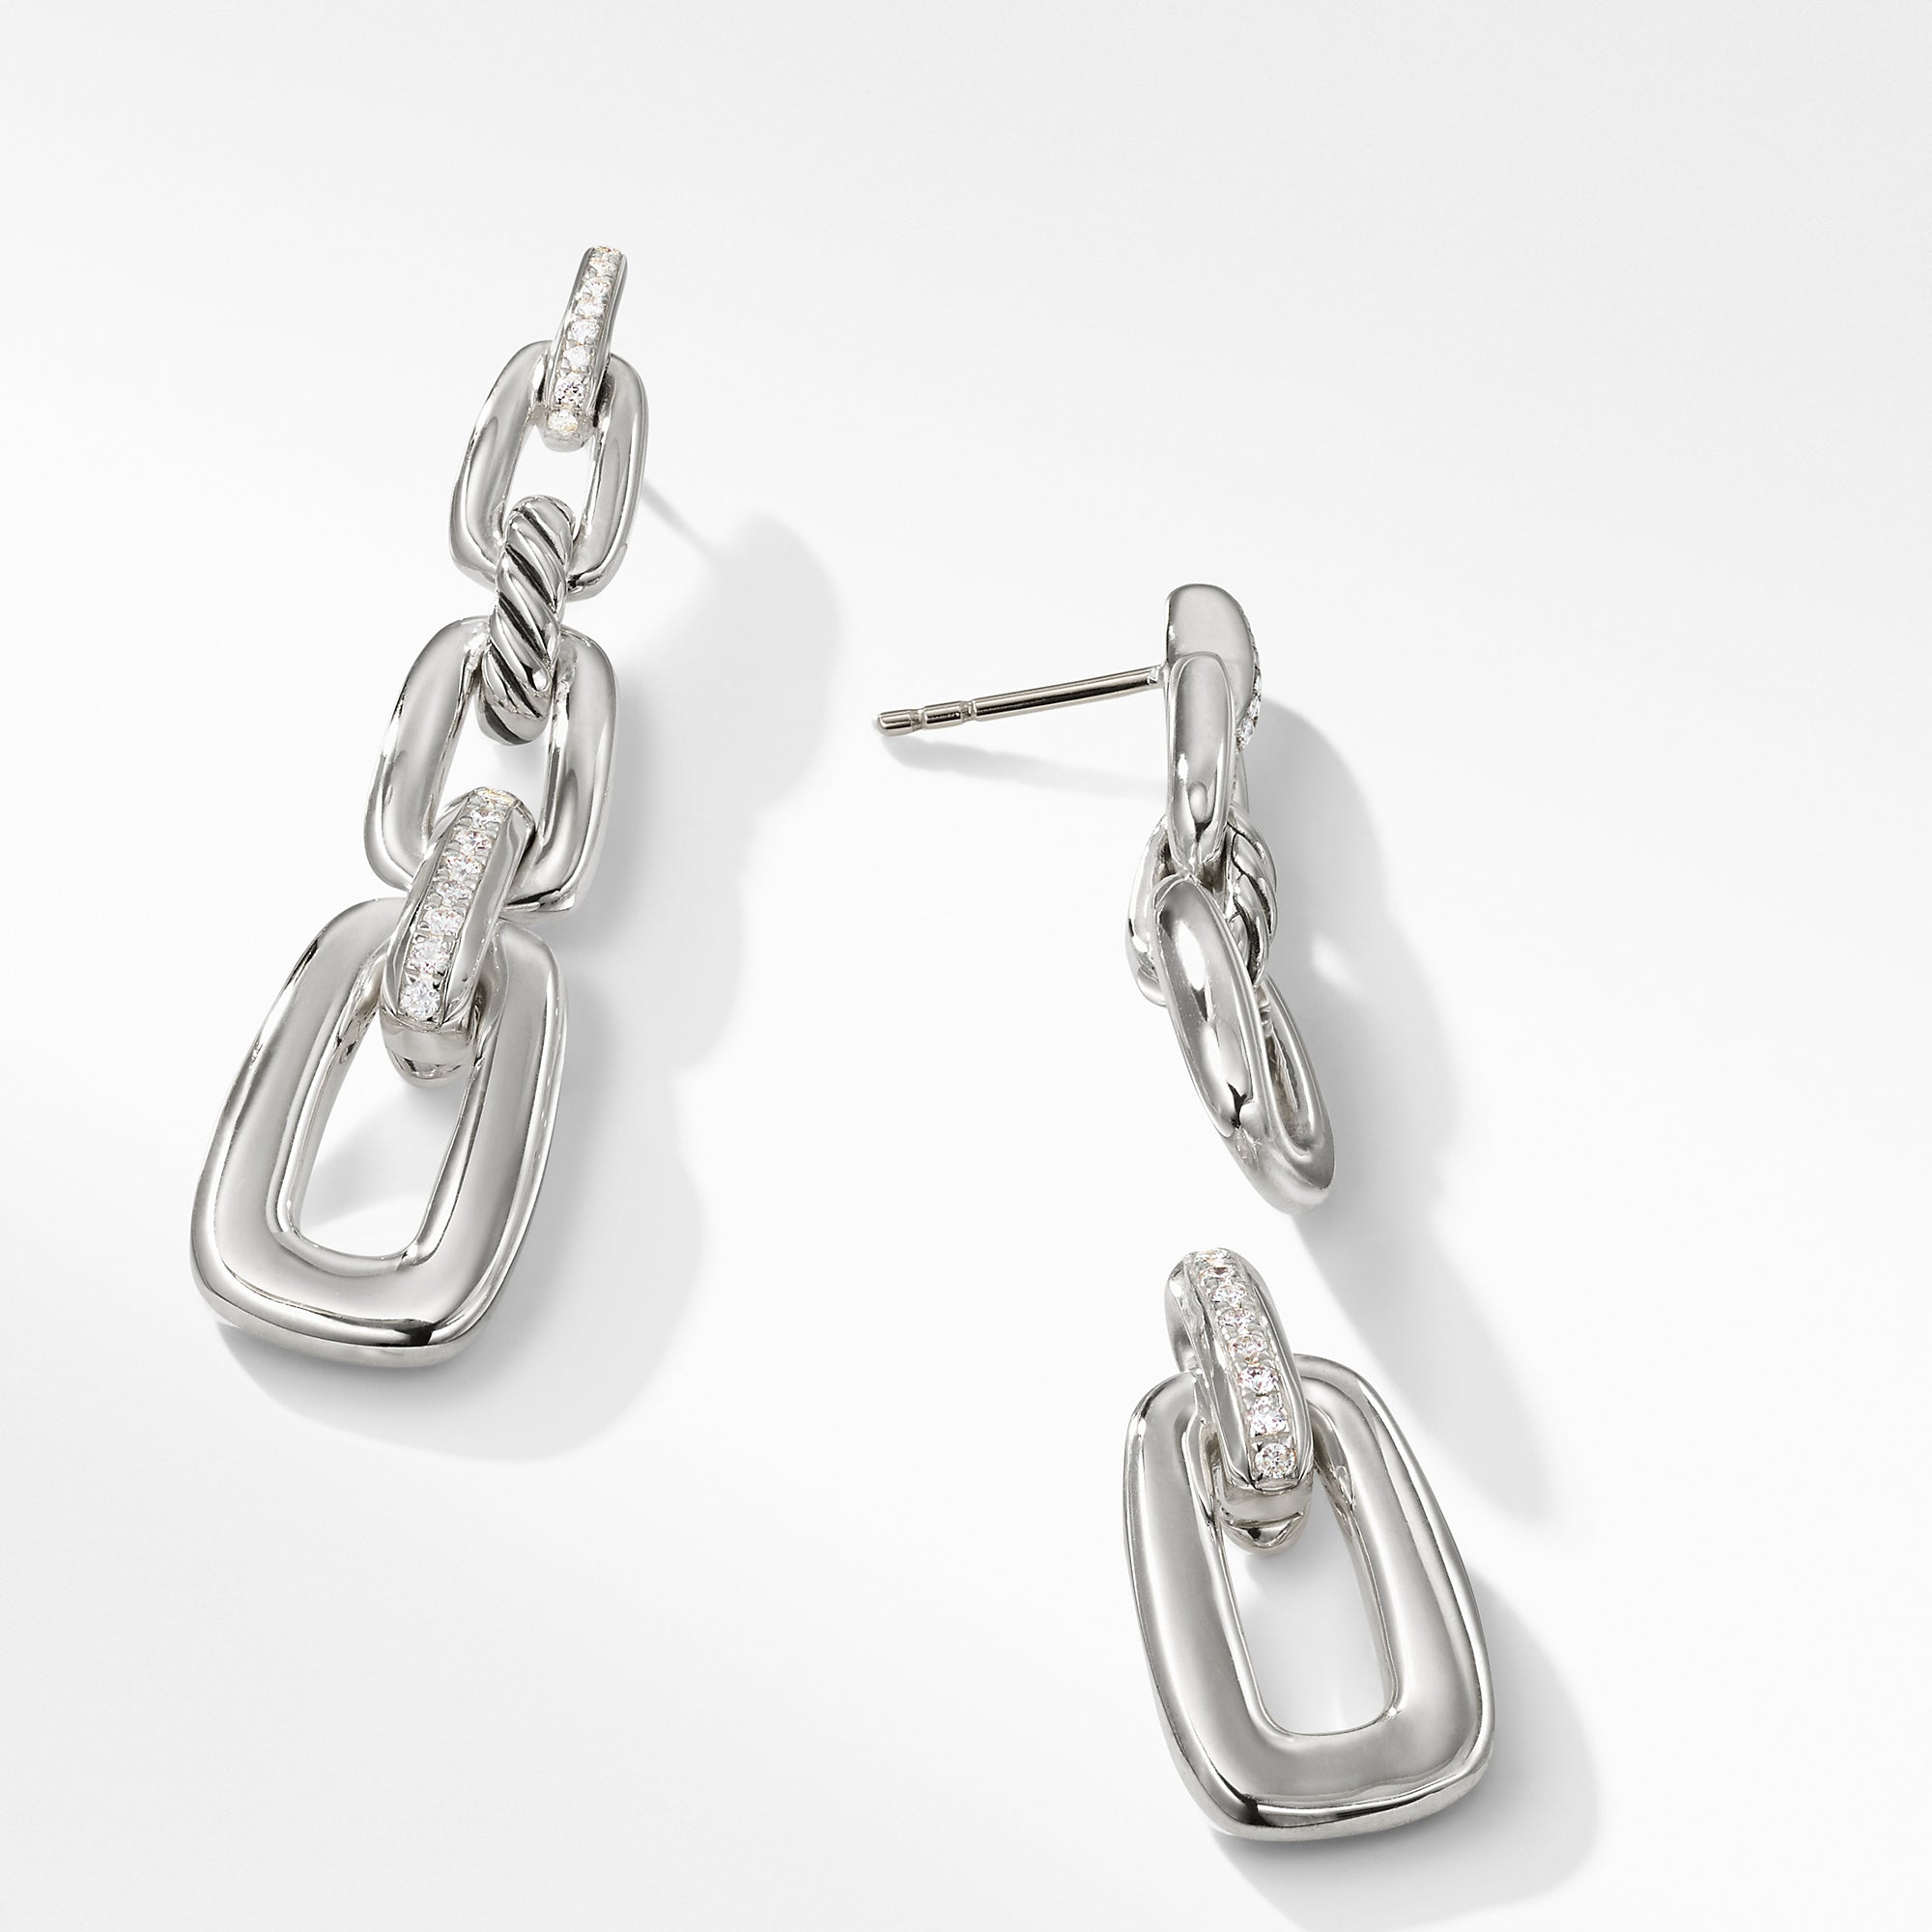 Wellesley Linked Chain Drop Earrings with Diamonds